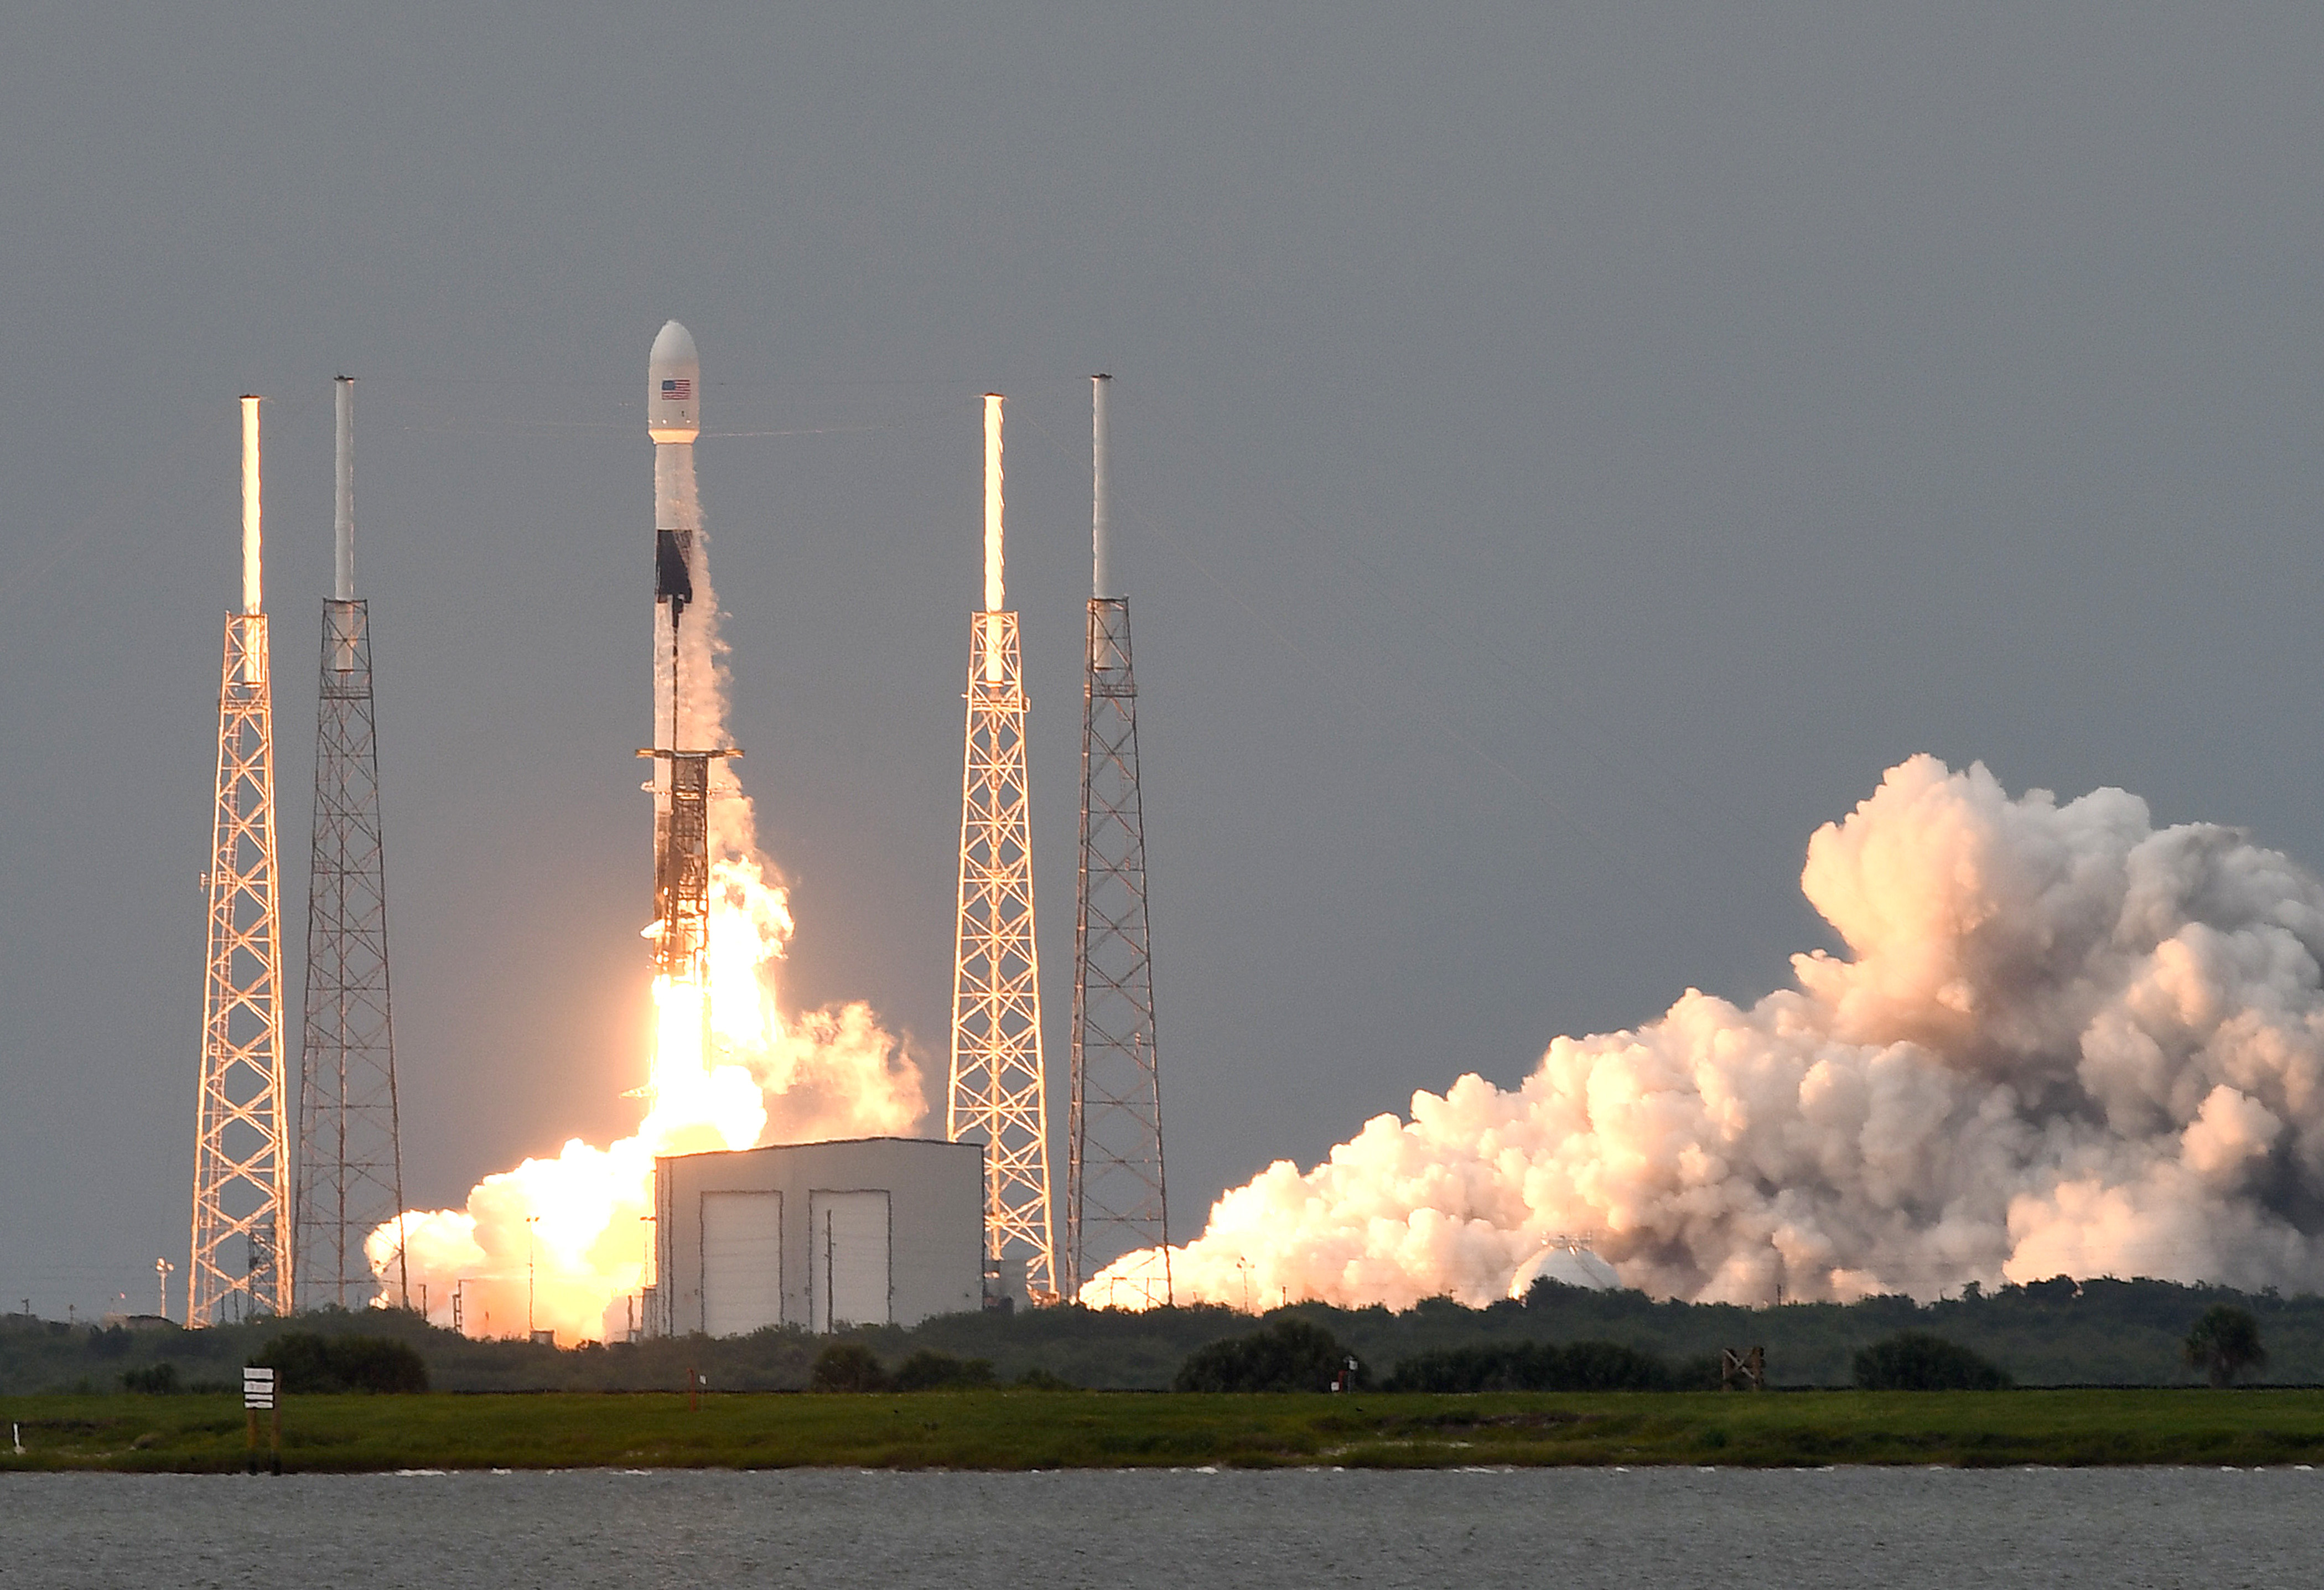 SpaceX Launches Earth Observation Satellite for Argentina in Cape Canaveral, US - 30 Aug 2020